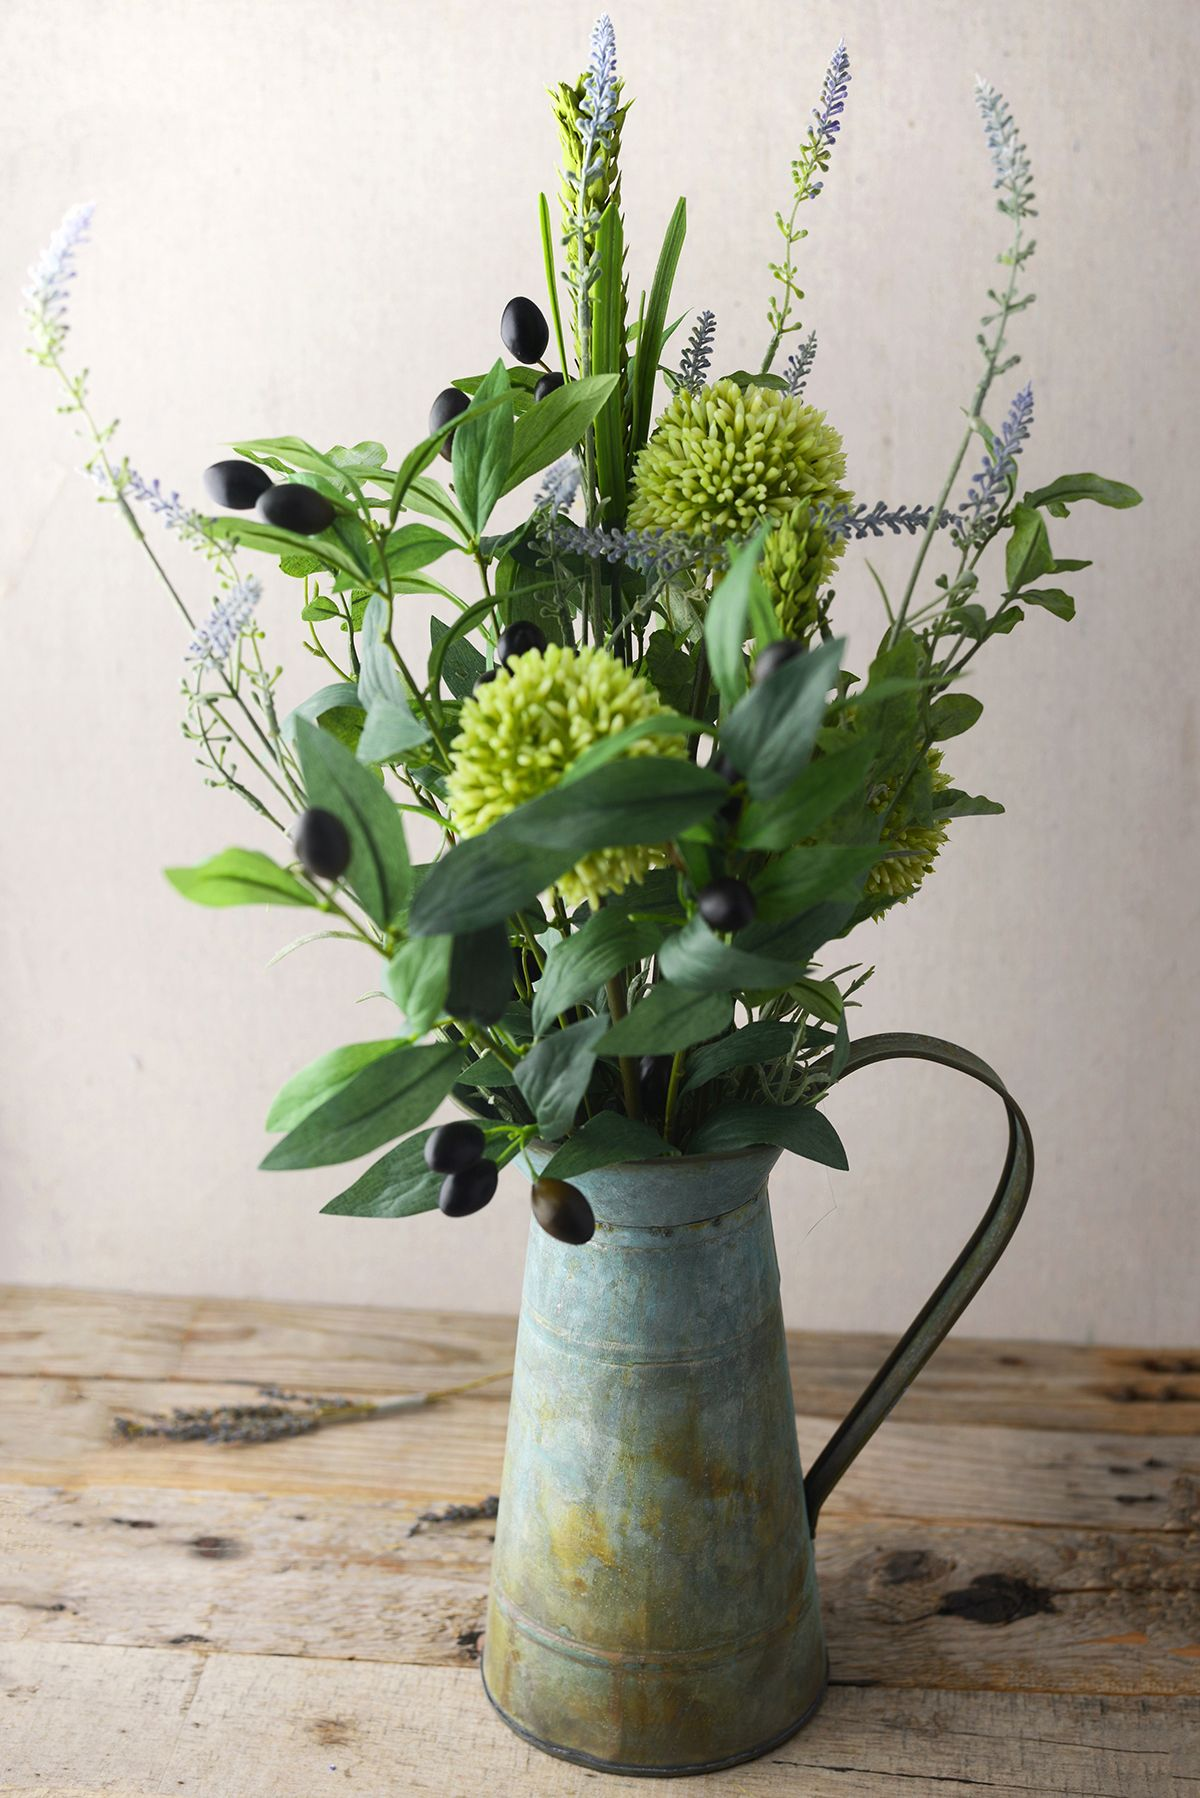 Wild Flowers, Olive Branches Water Can Arrangement. With a